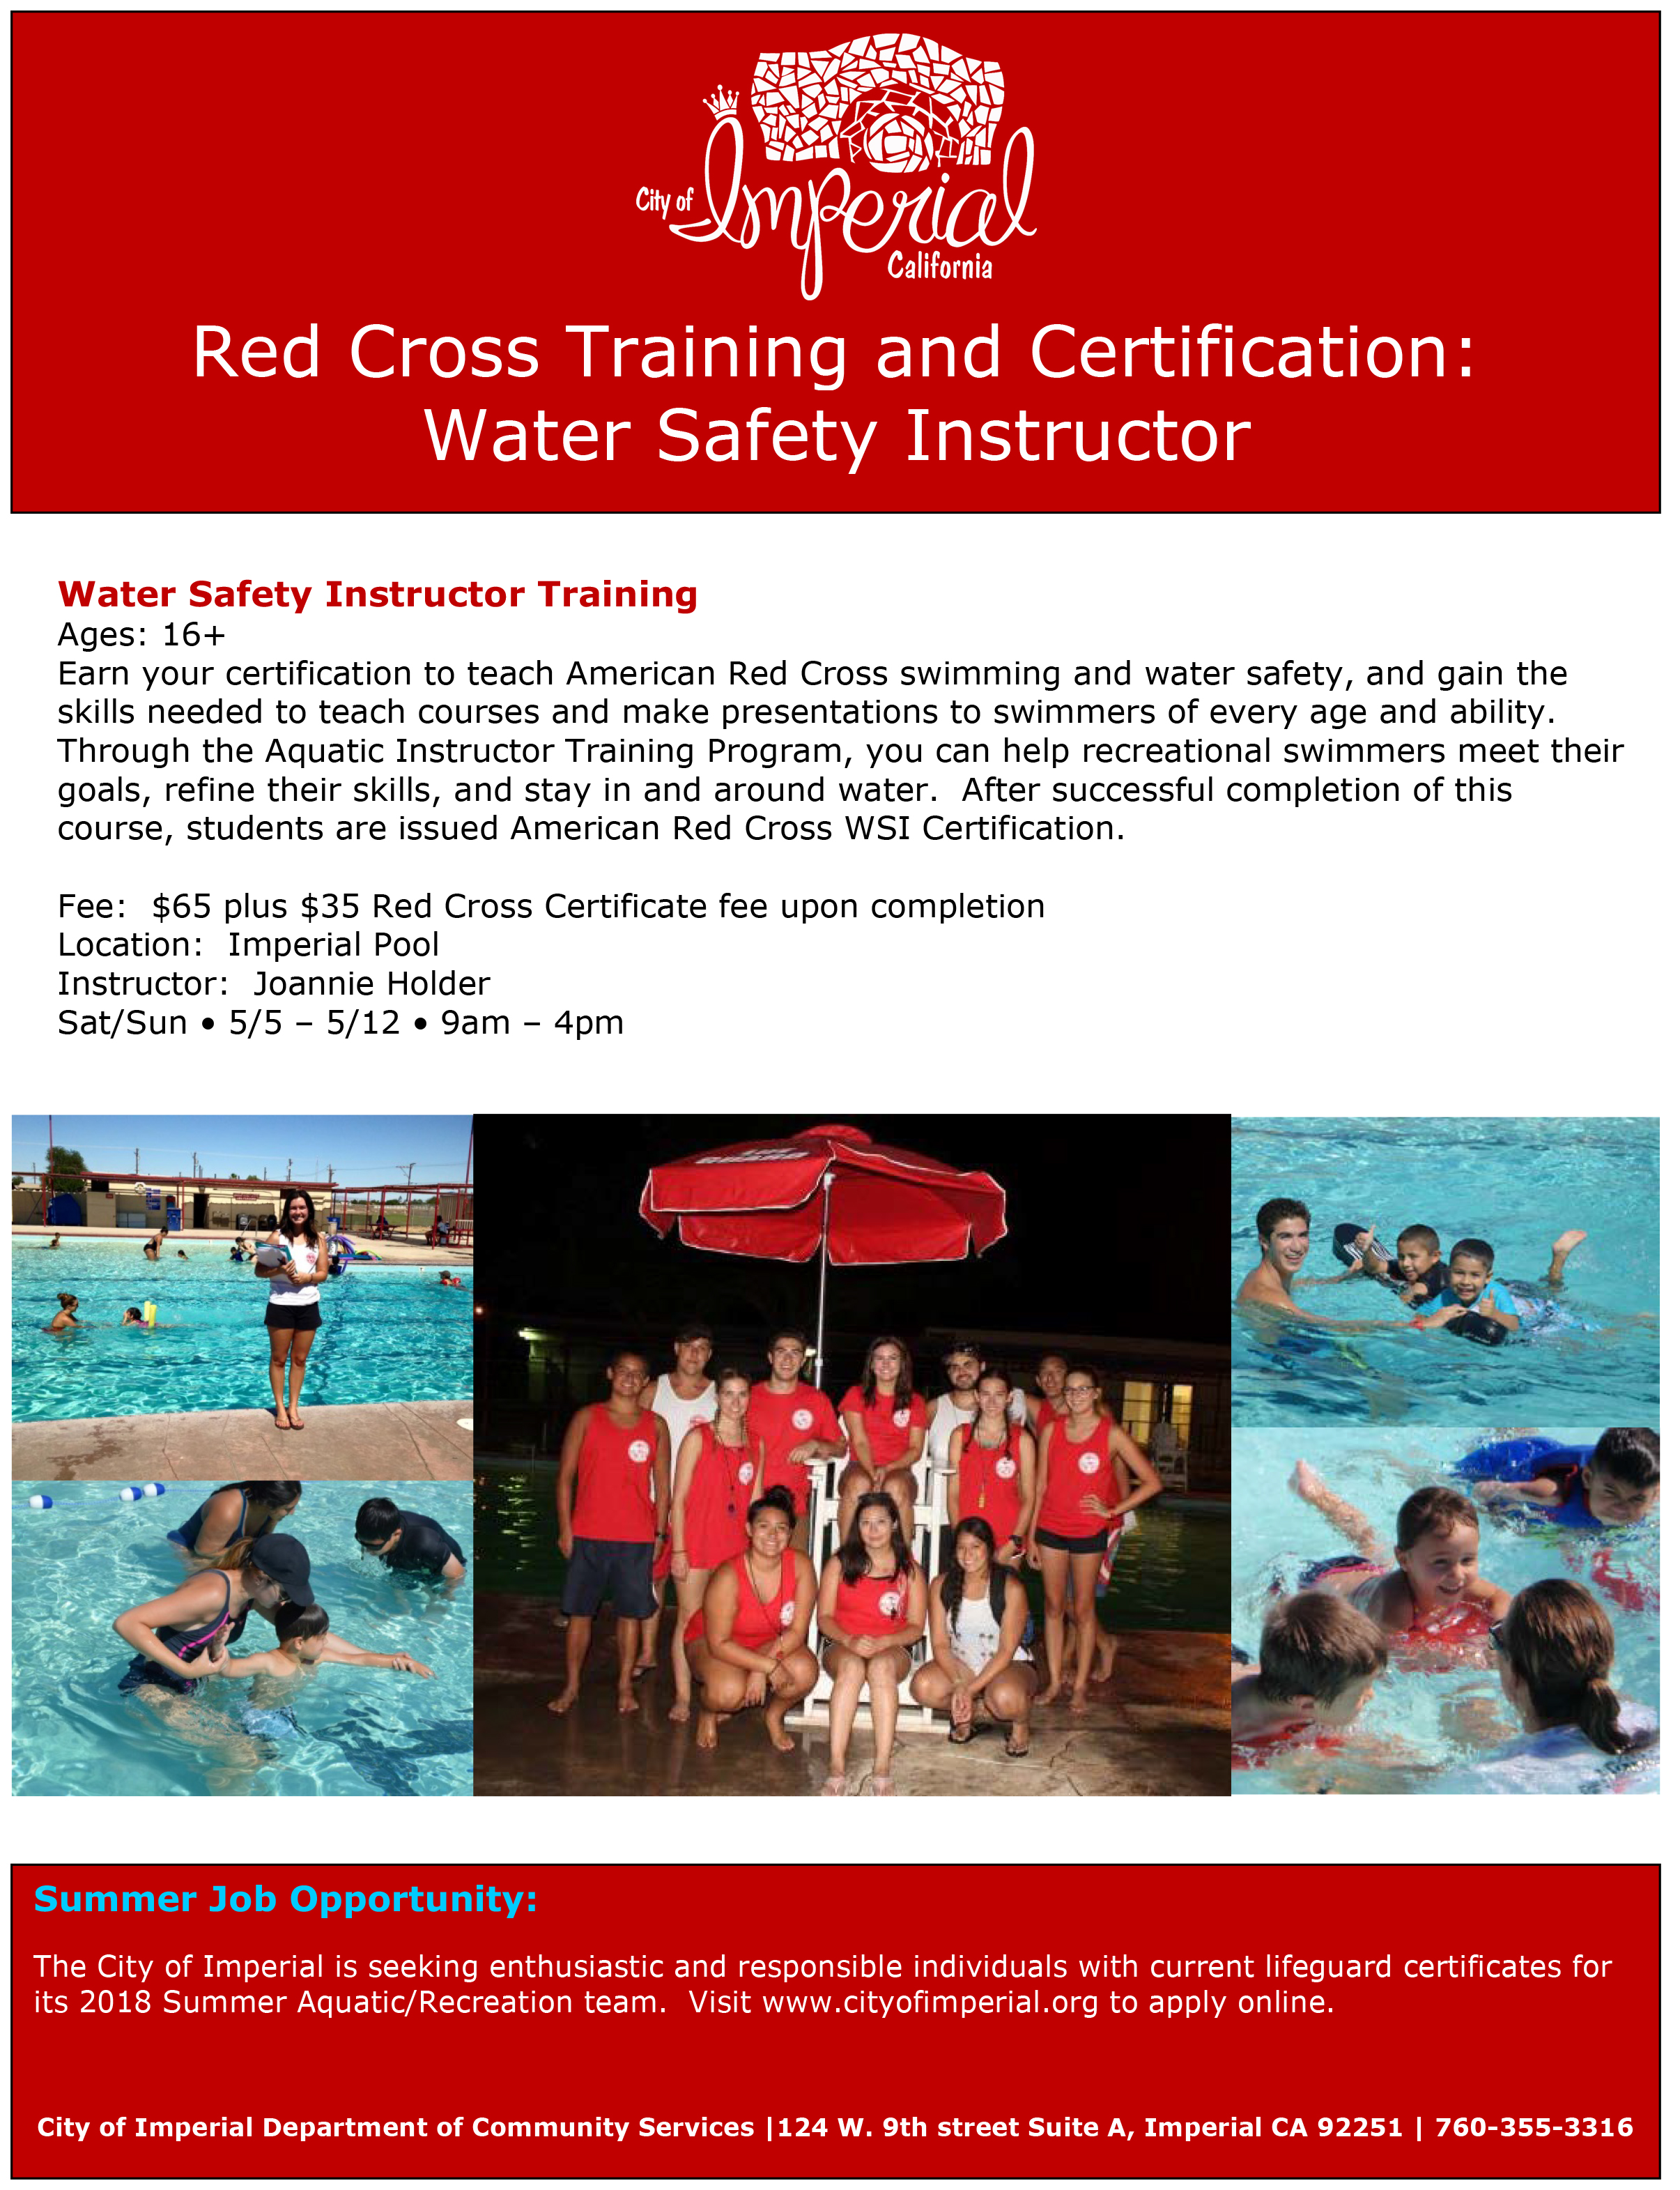 Water Safety Instructor Red Cross Training and Certification | City ...